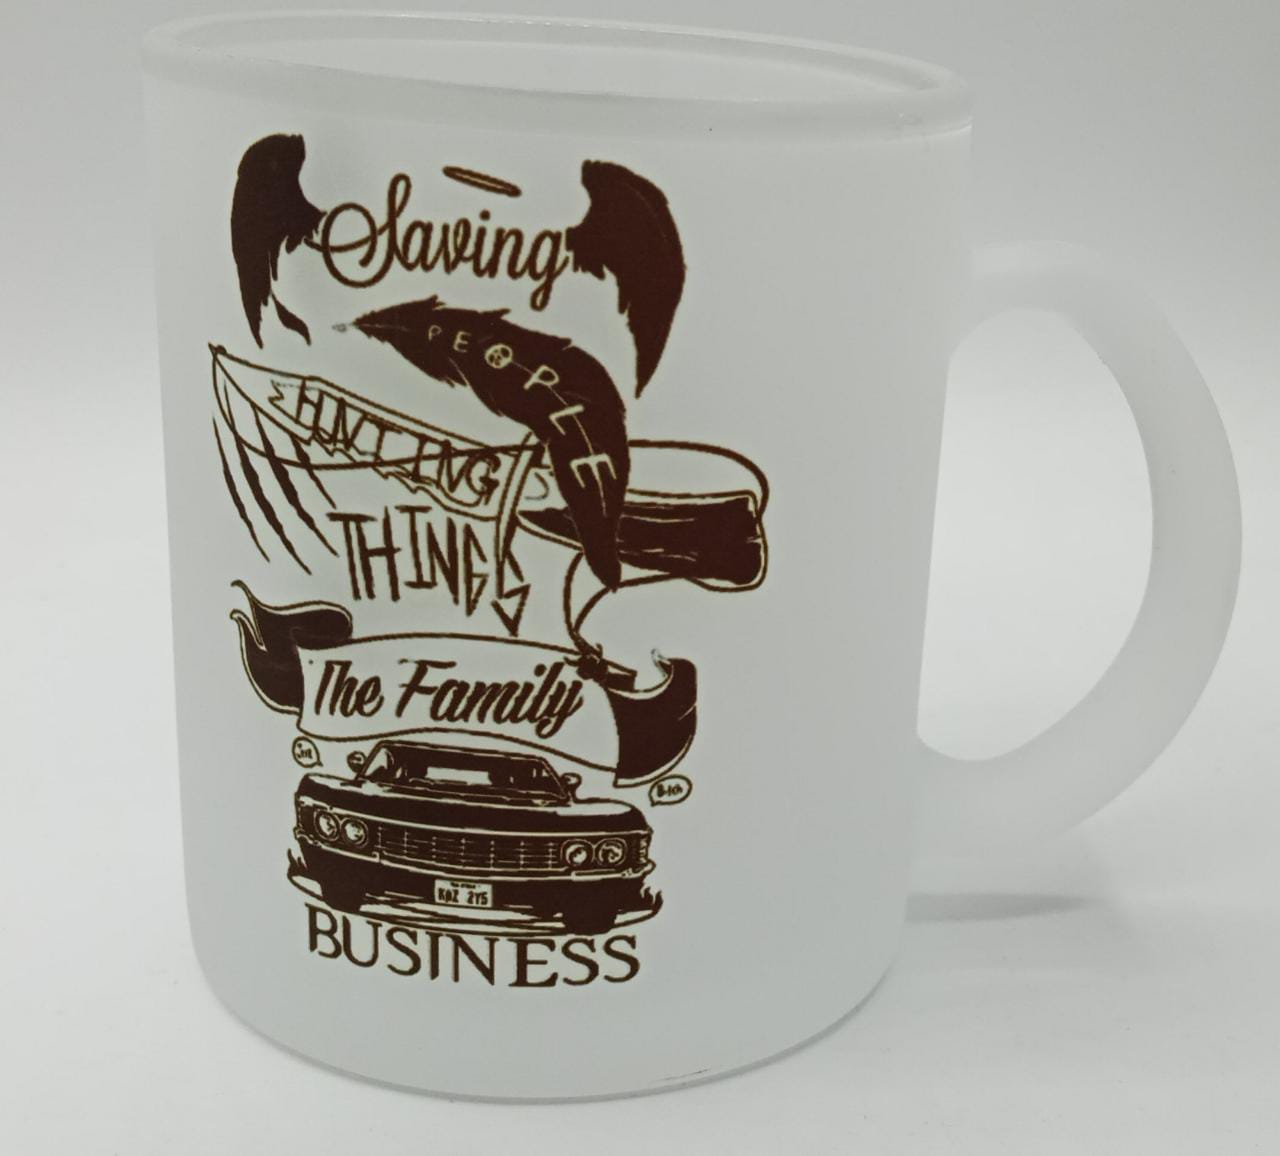 Caneca Fosca ''Saving, People, Hunting, Things, The Family e Business'' - Supernatural